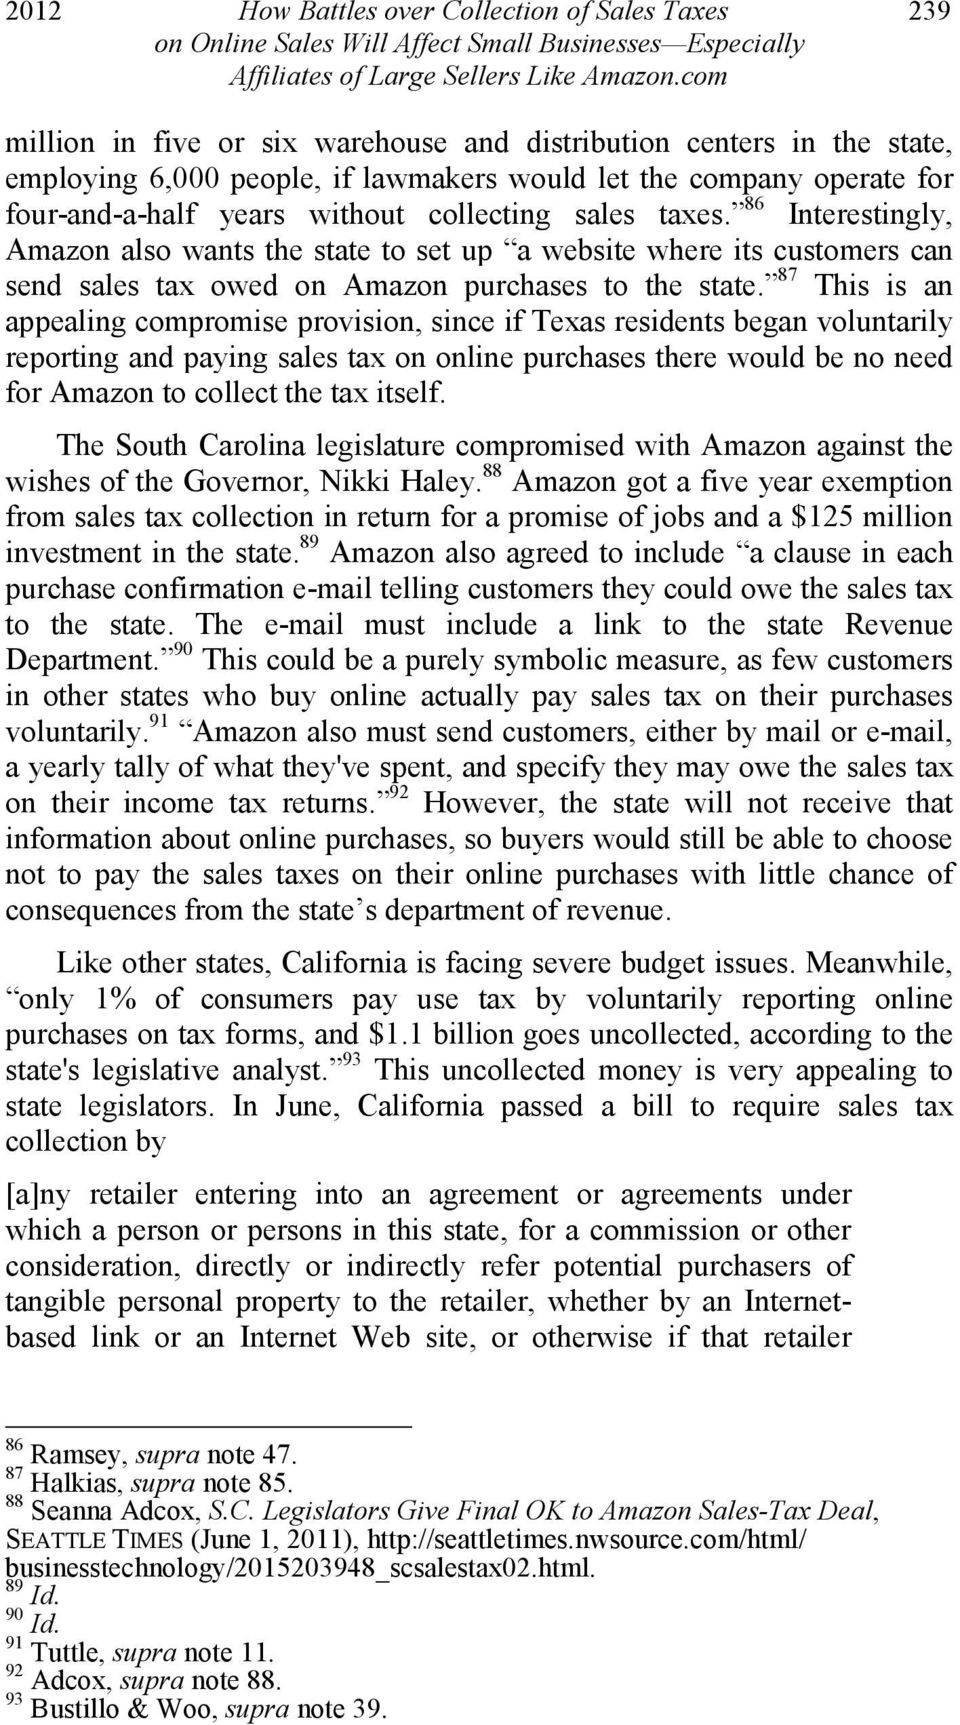 86 Interestingly, Amazon also wants the state to set up a website where its customers can send sales tax owed on Amazon purchases to the state.